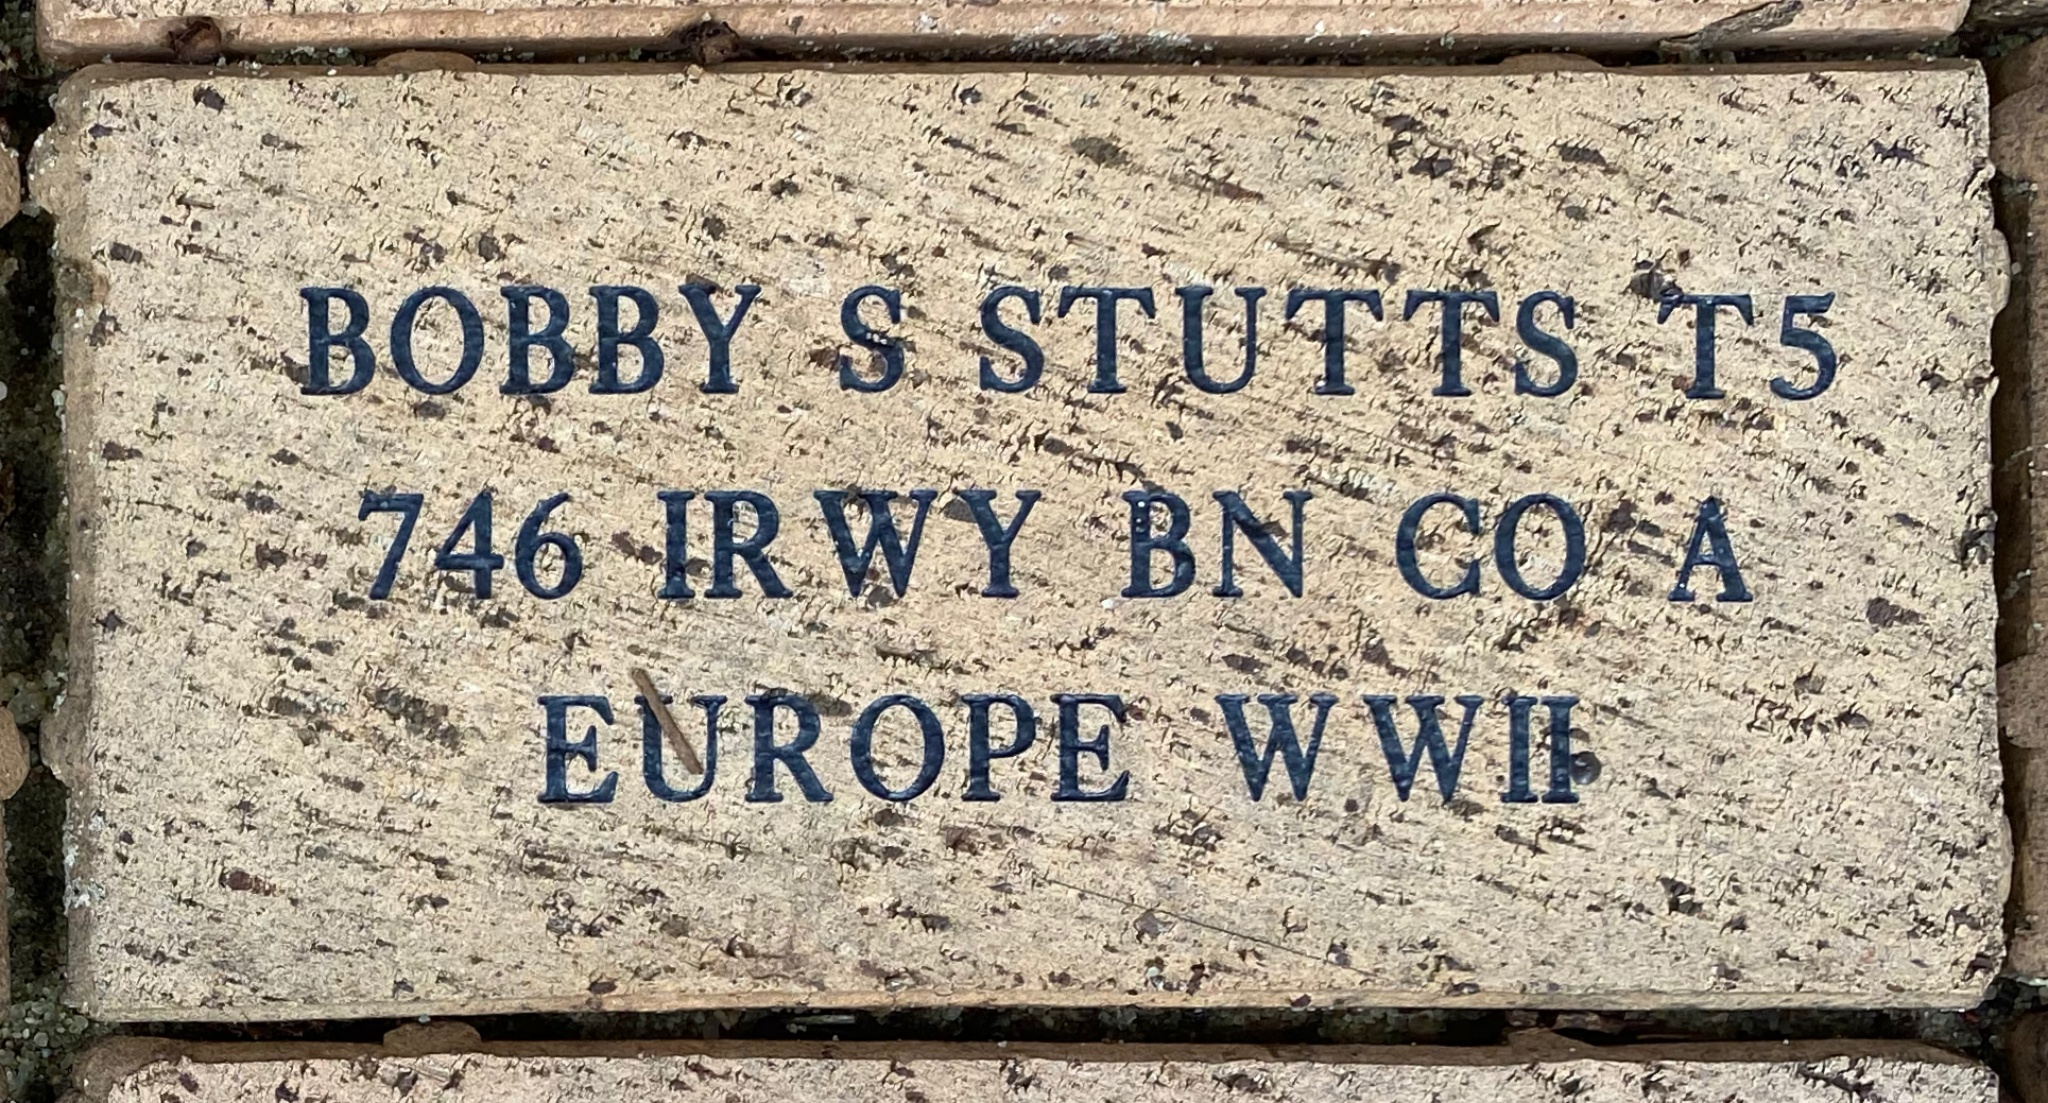 BOBBY S STUTTS T5 746 RWY BN CO A EUROPE WWII